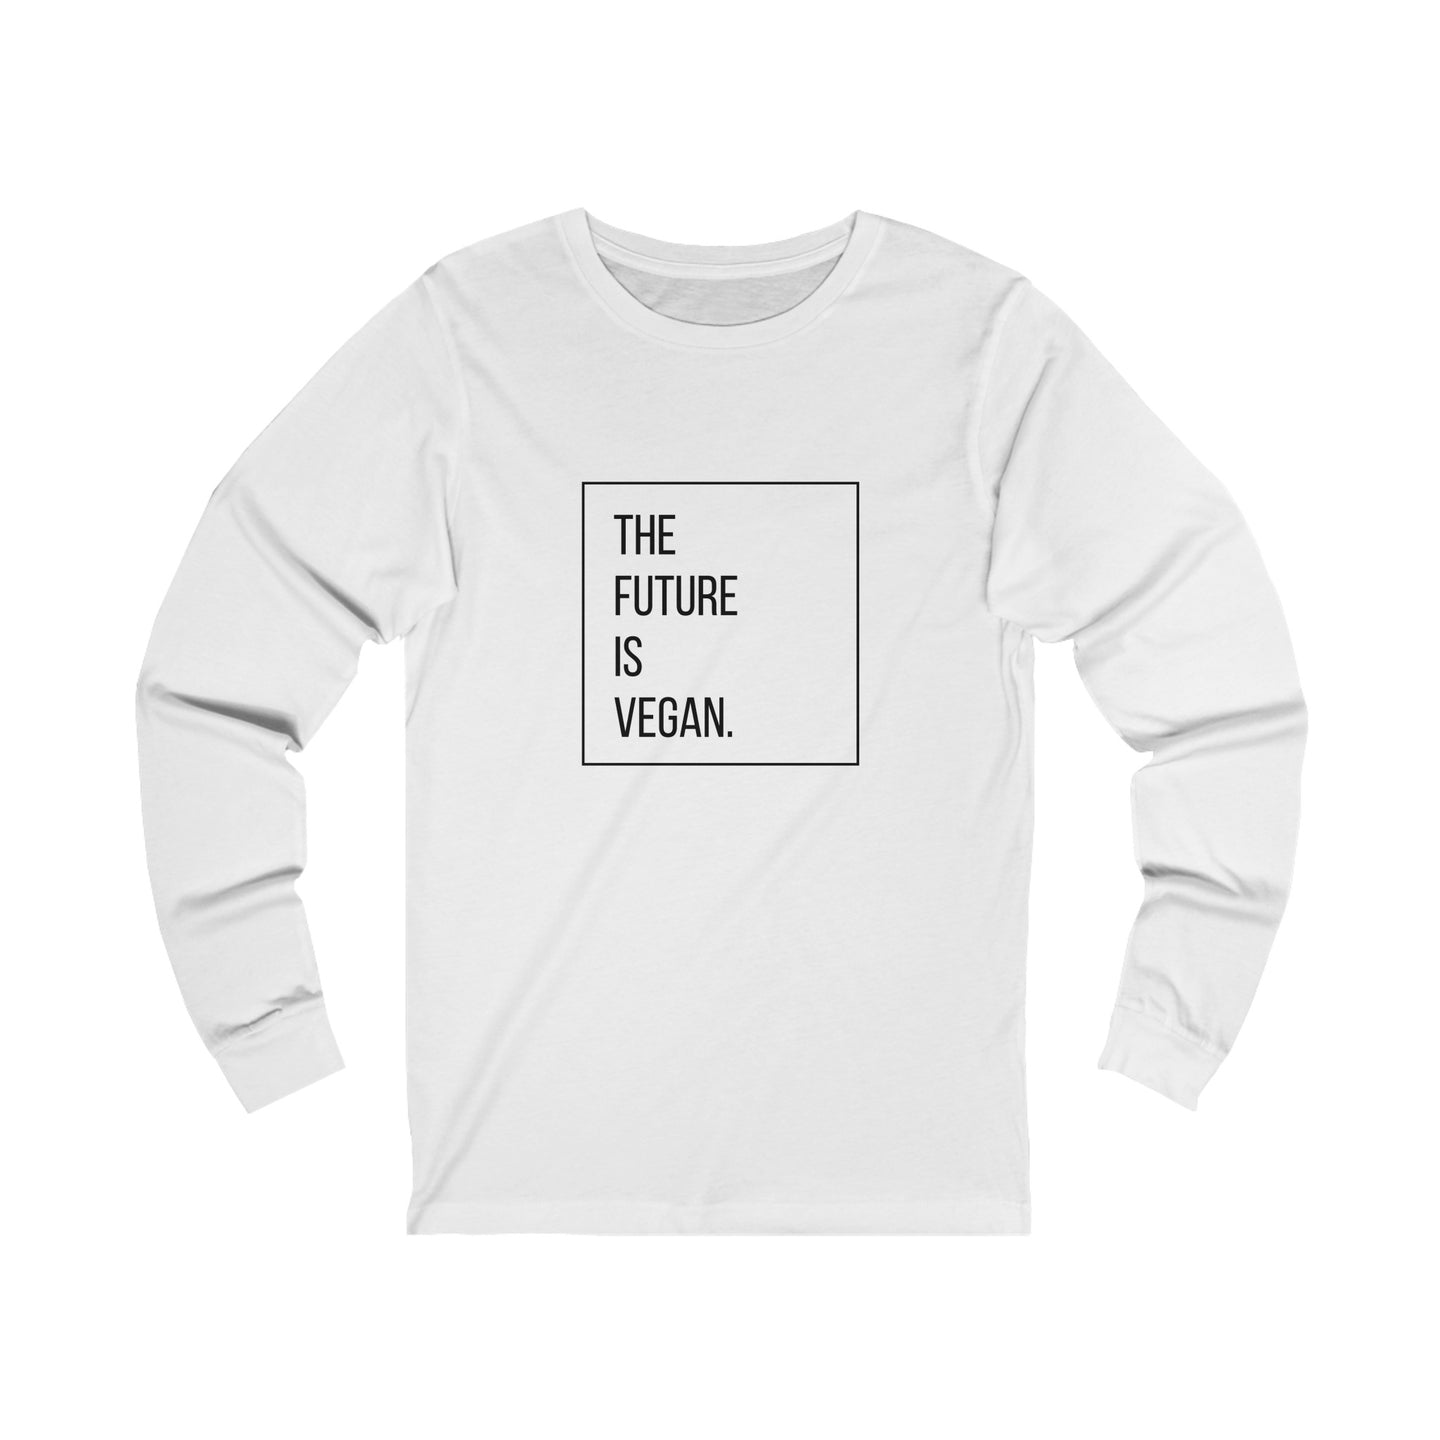 The Future Is Vegan Unisex Long Sleeve T-Shirt